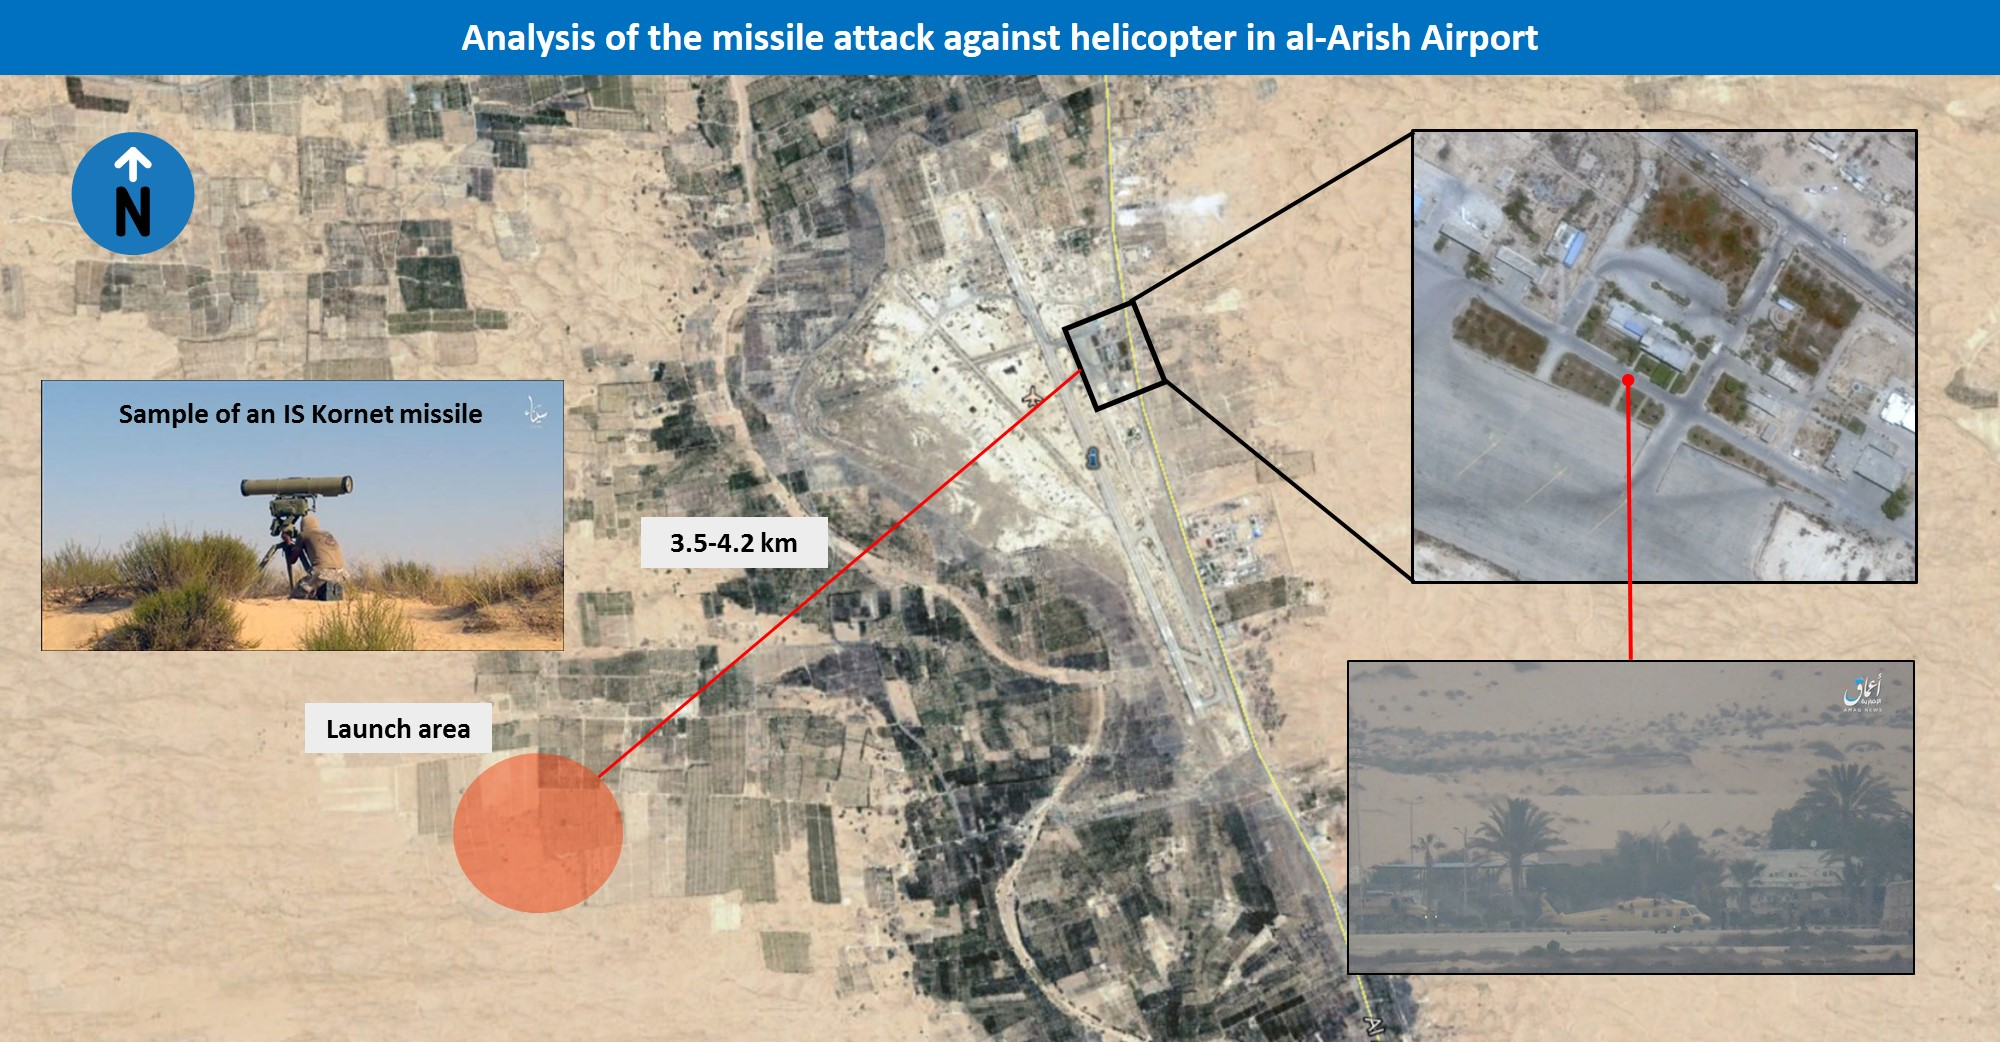 Analysis of the Missile against Helicopter in Al-Arish-Airport